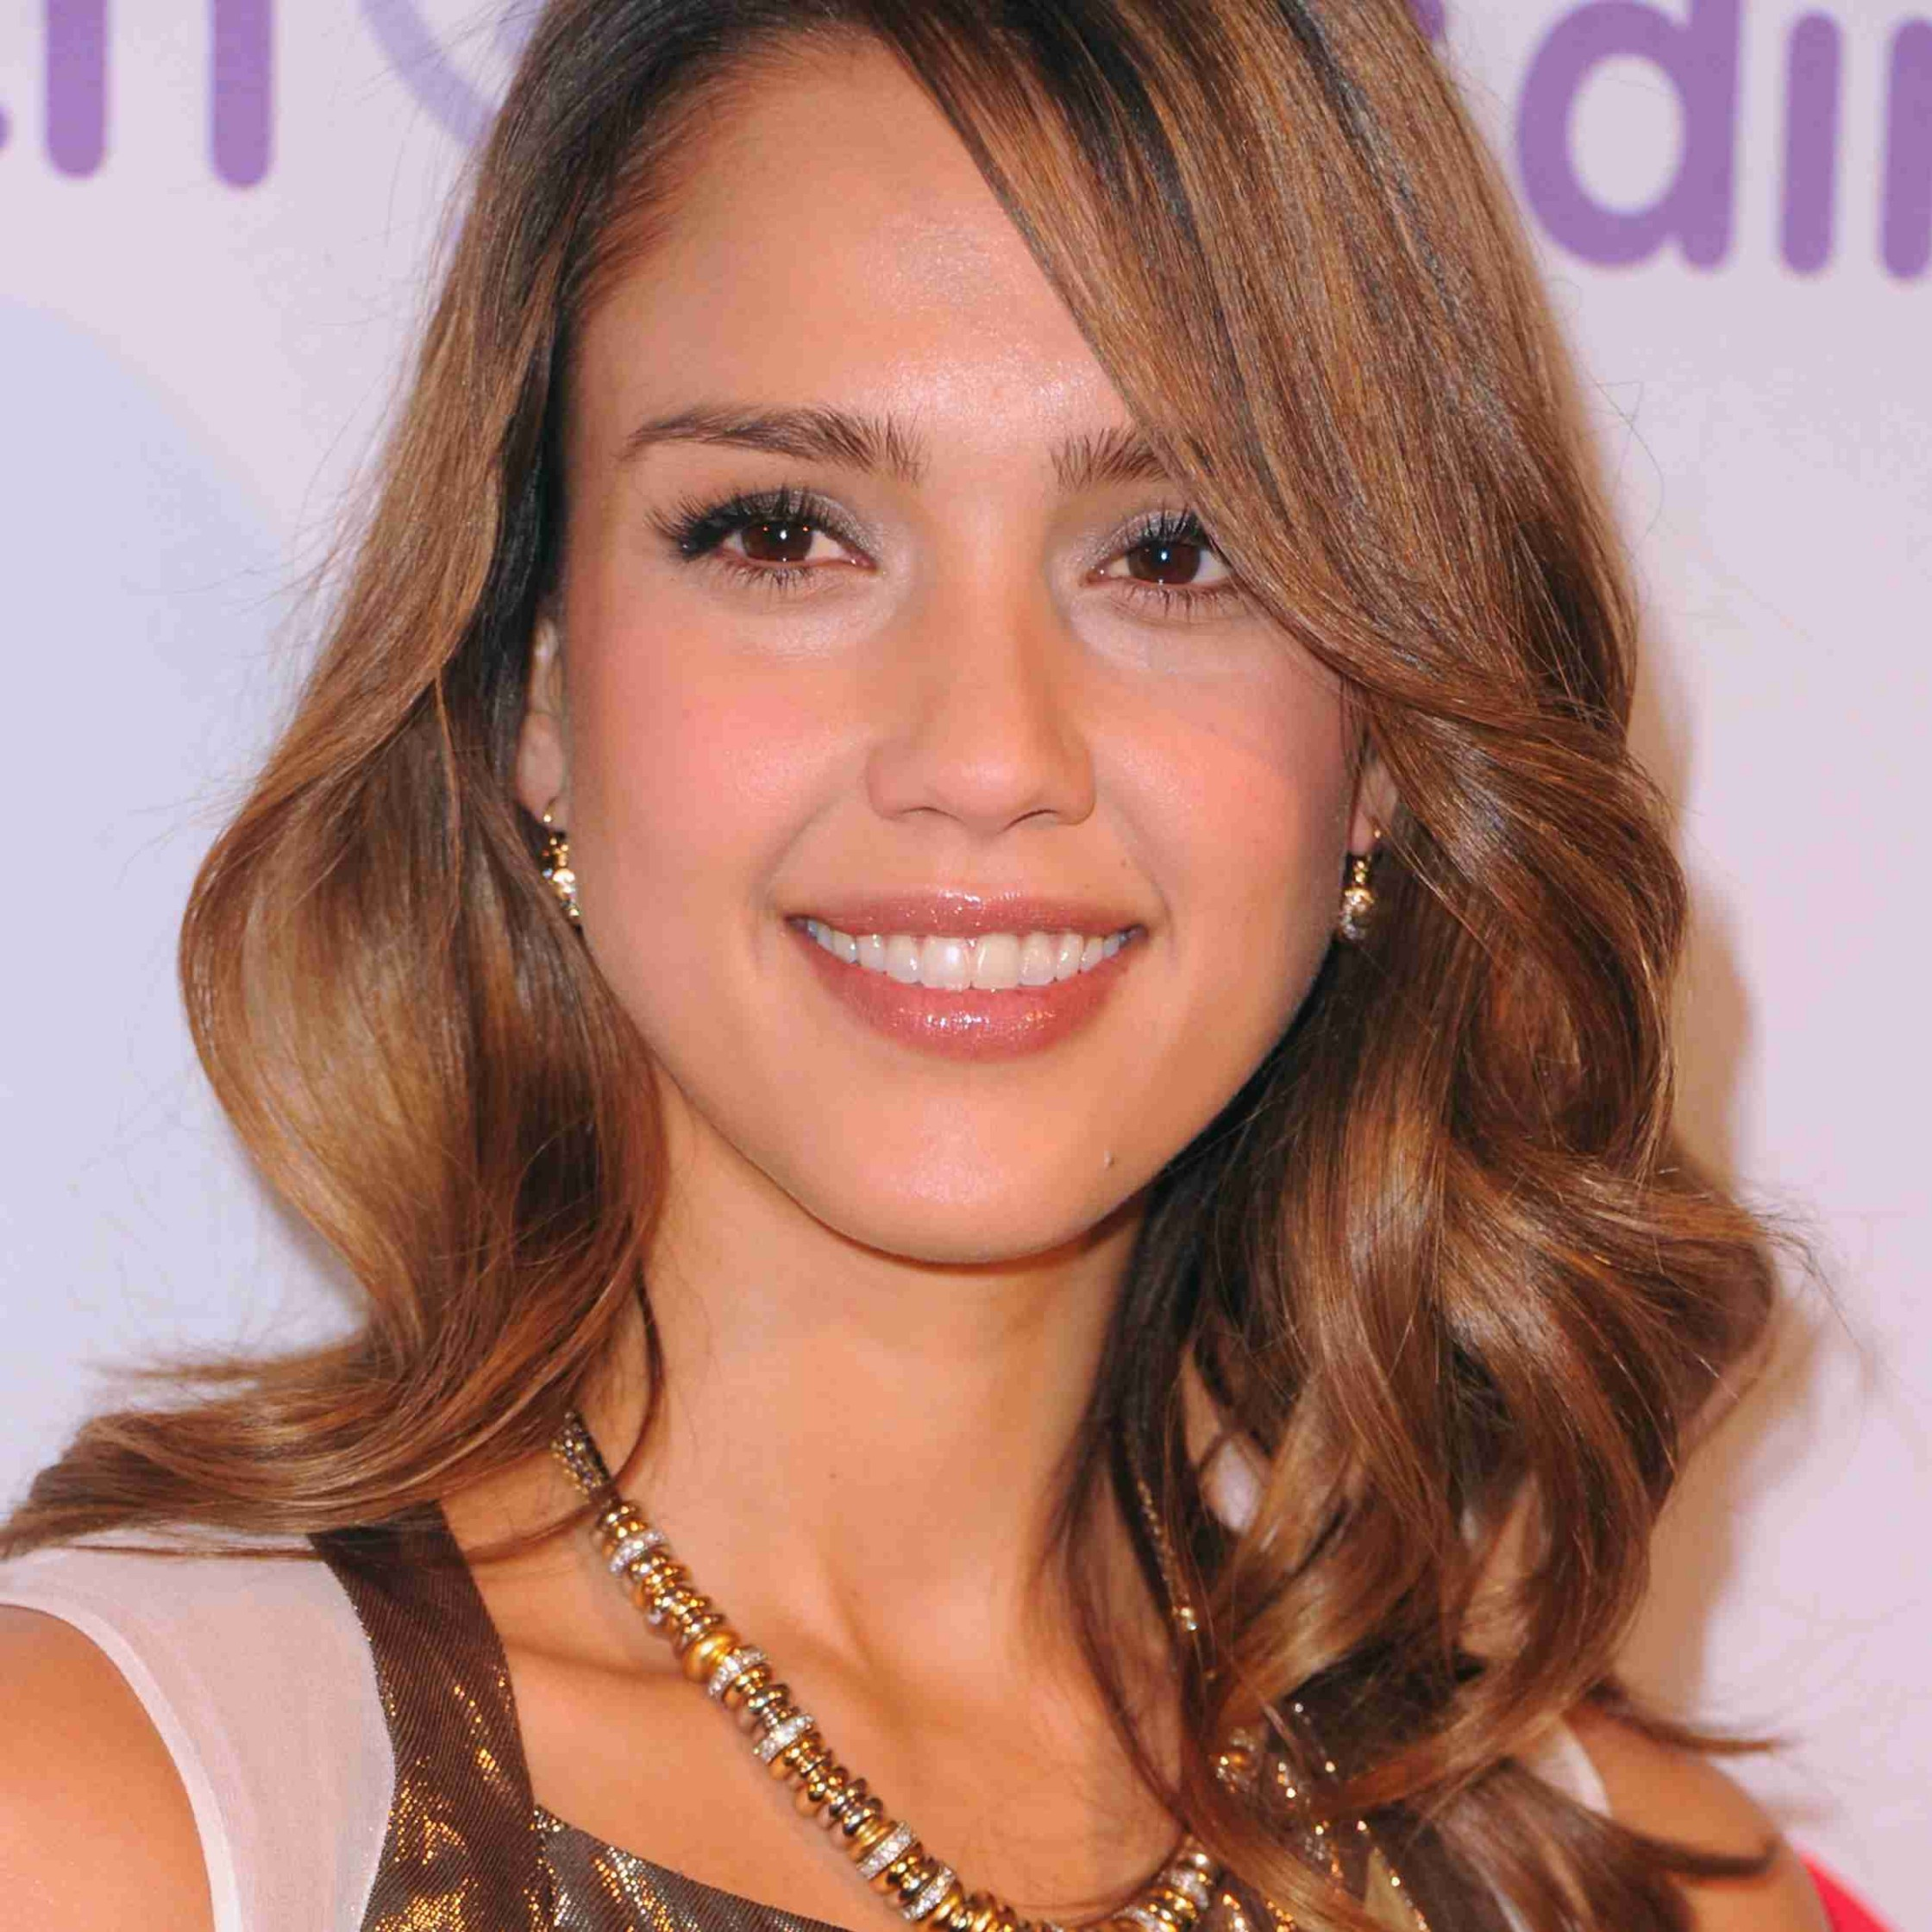 10 Stylish Hairstyles For Oblong Face Shapes Best Hairstyles For Oblong Faces